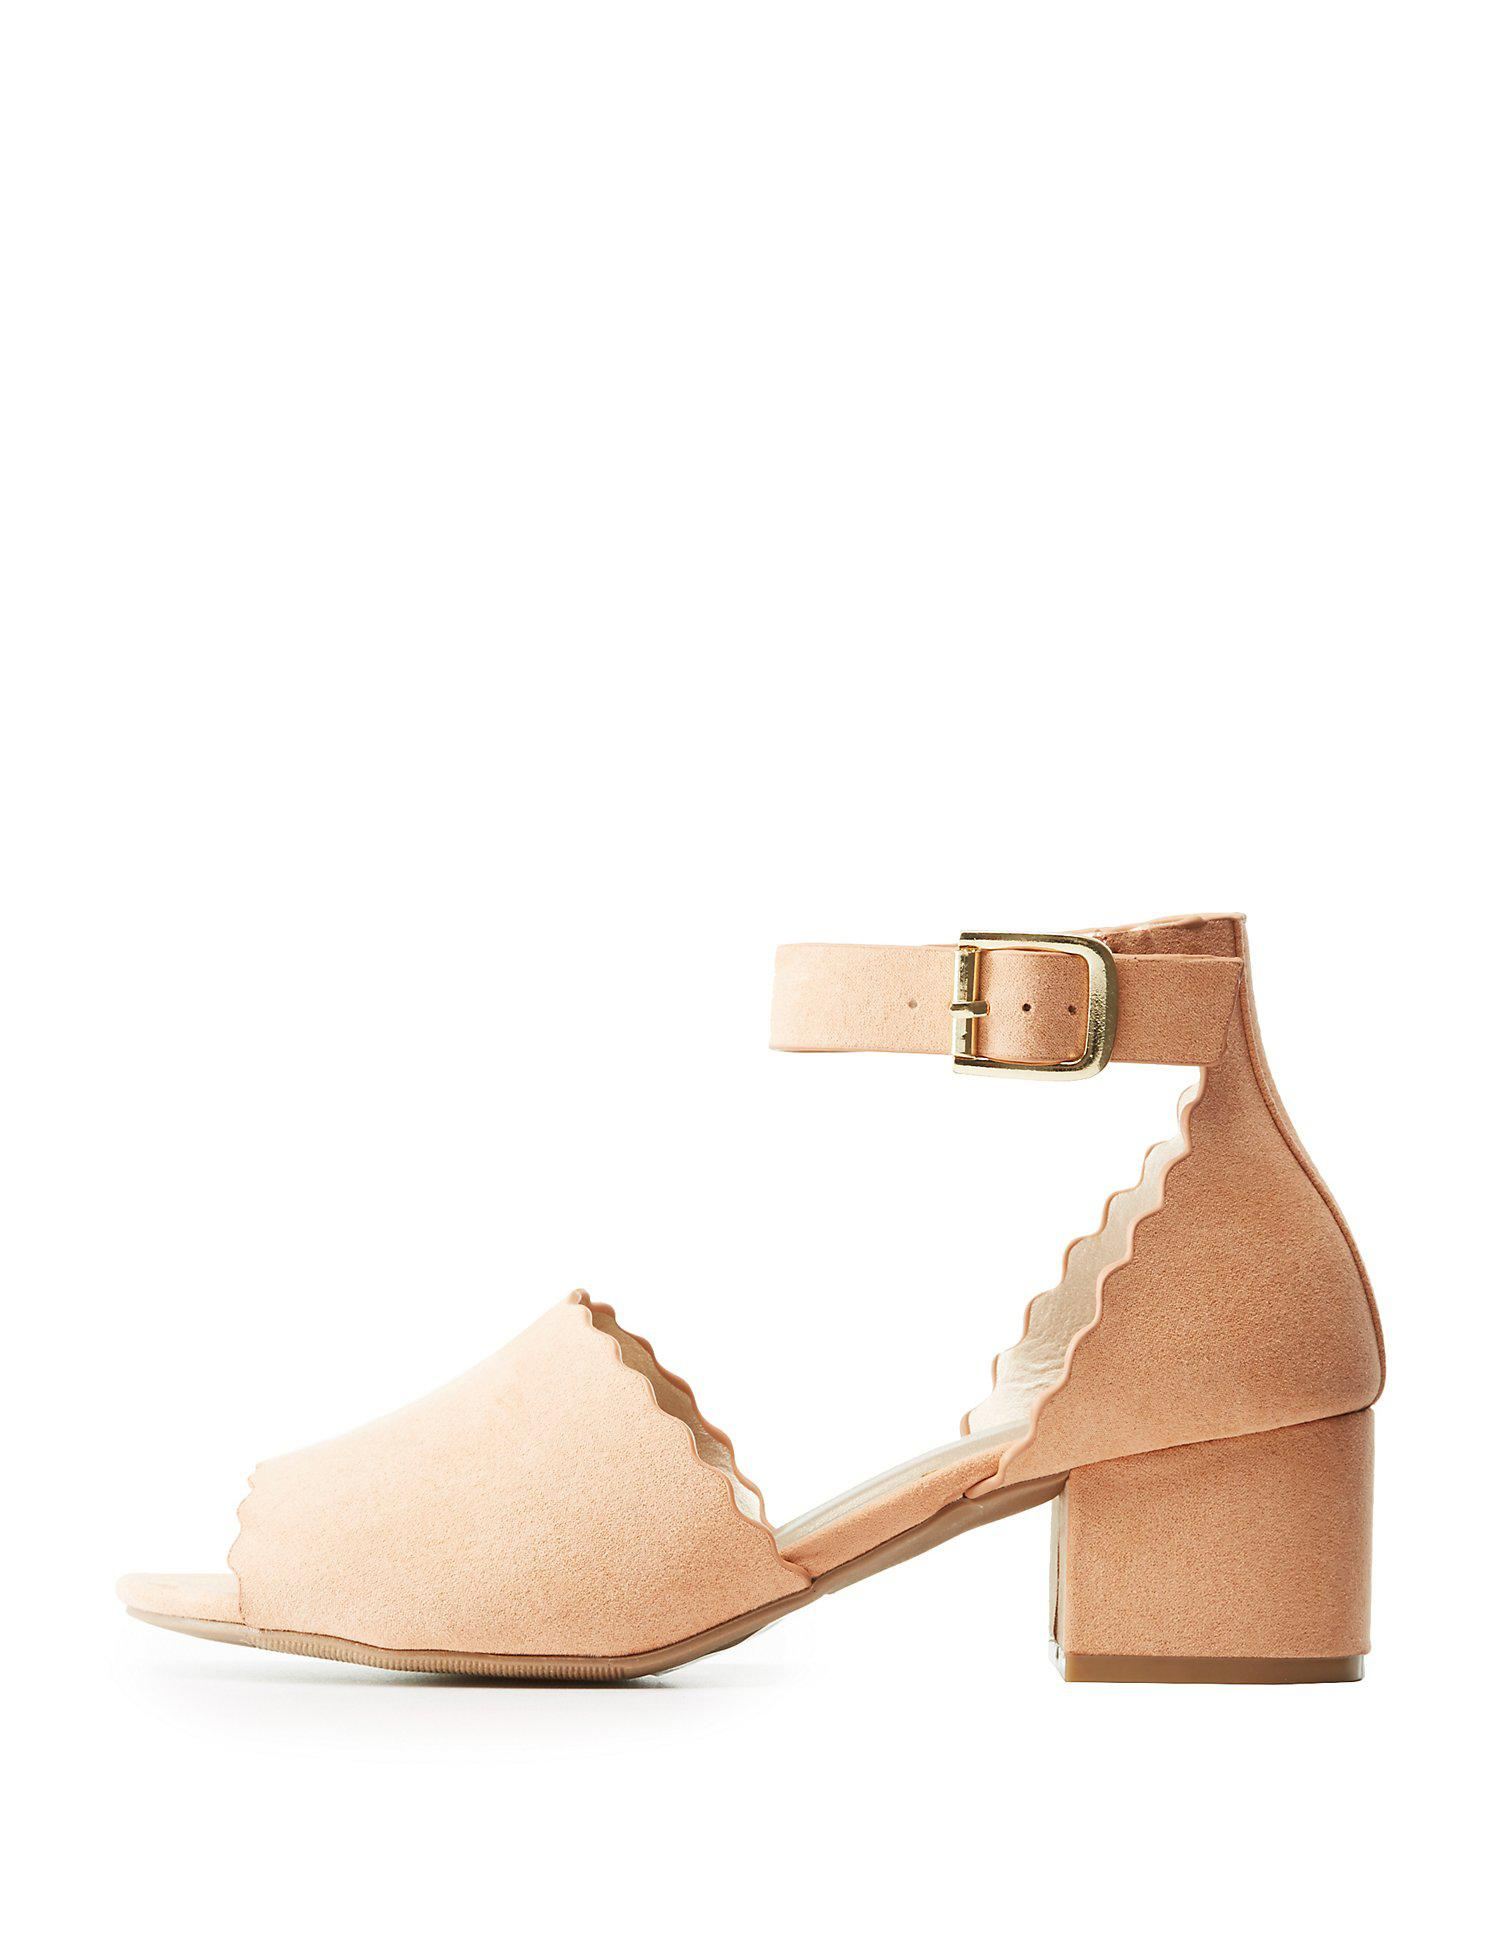 b1fddfd70c2 Lyst - Charlotte Russe Qupid Ankle Strap Scallop Sandals - Save 66%